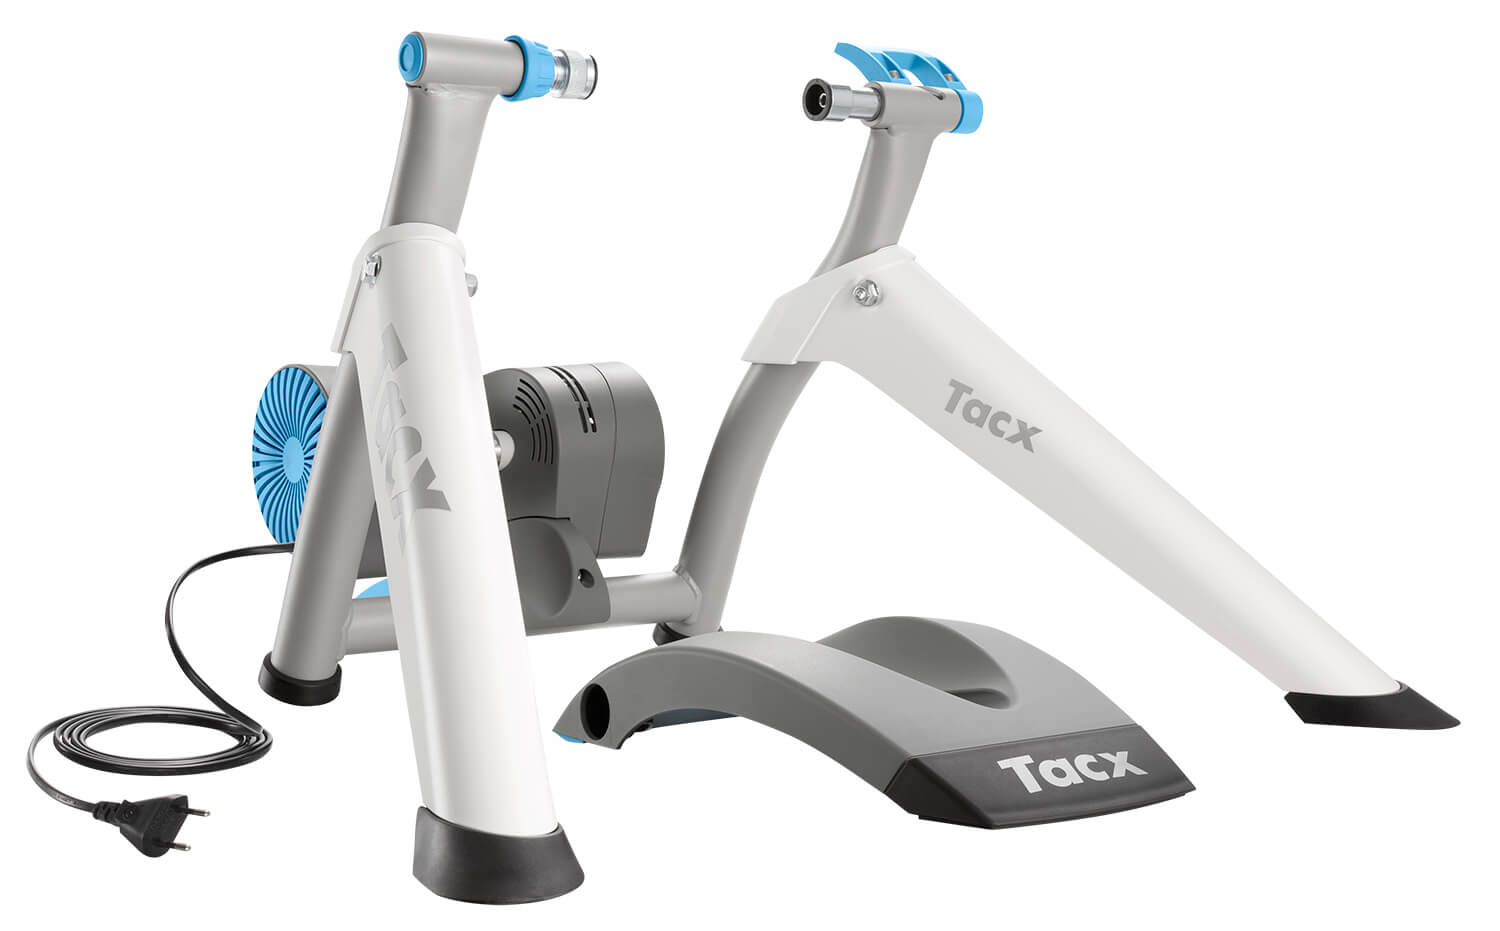 Test af Tacx Vortex Smart hometrainer - ANT+/Bluetooth